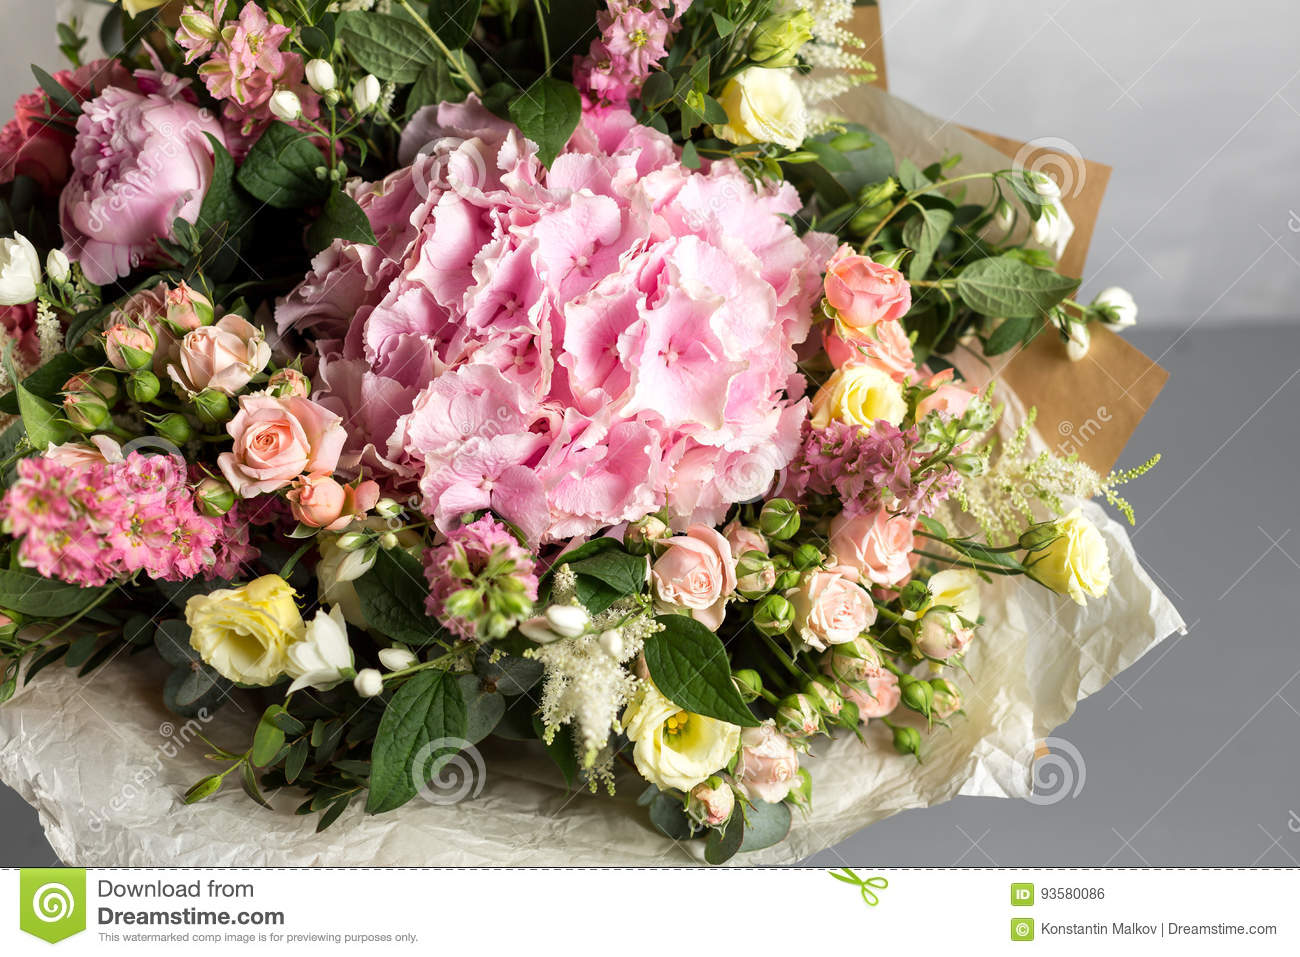 Still life with a bouquet of flowers the florist put together a royalty free stock photo izmirmasajfo